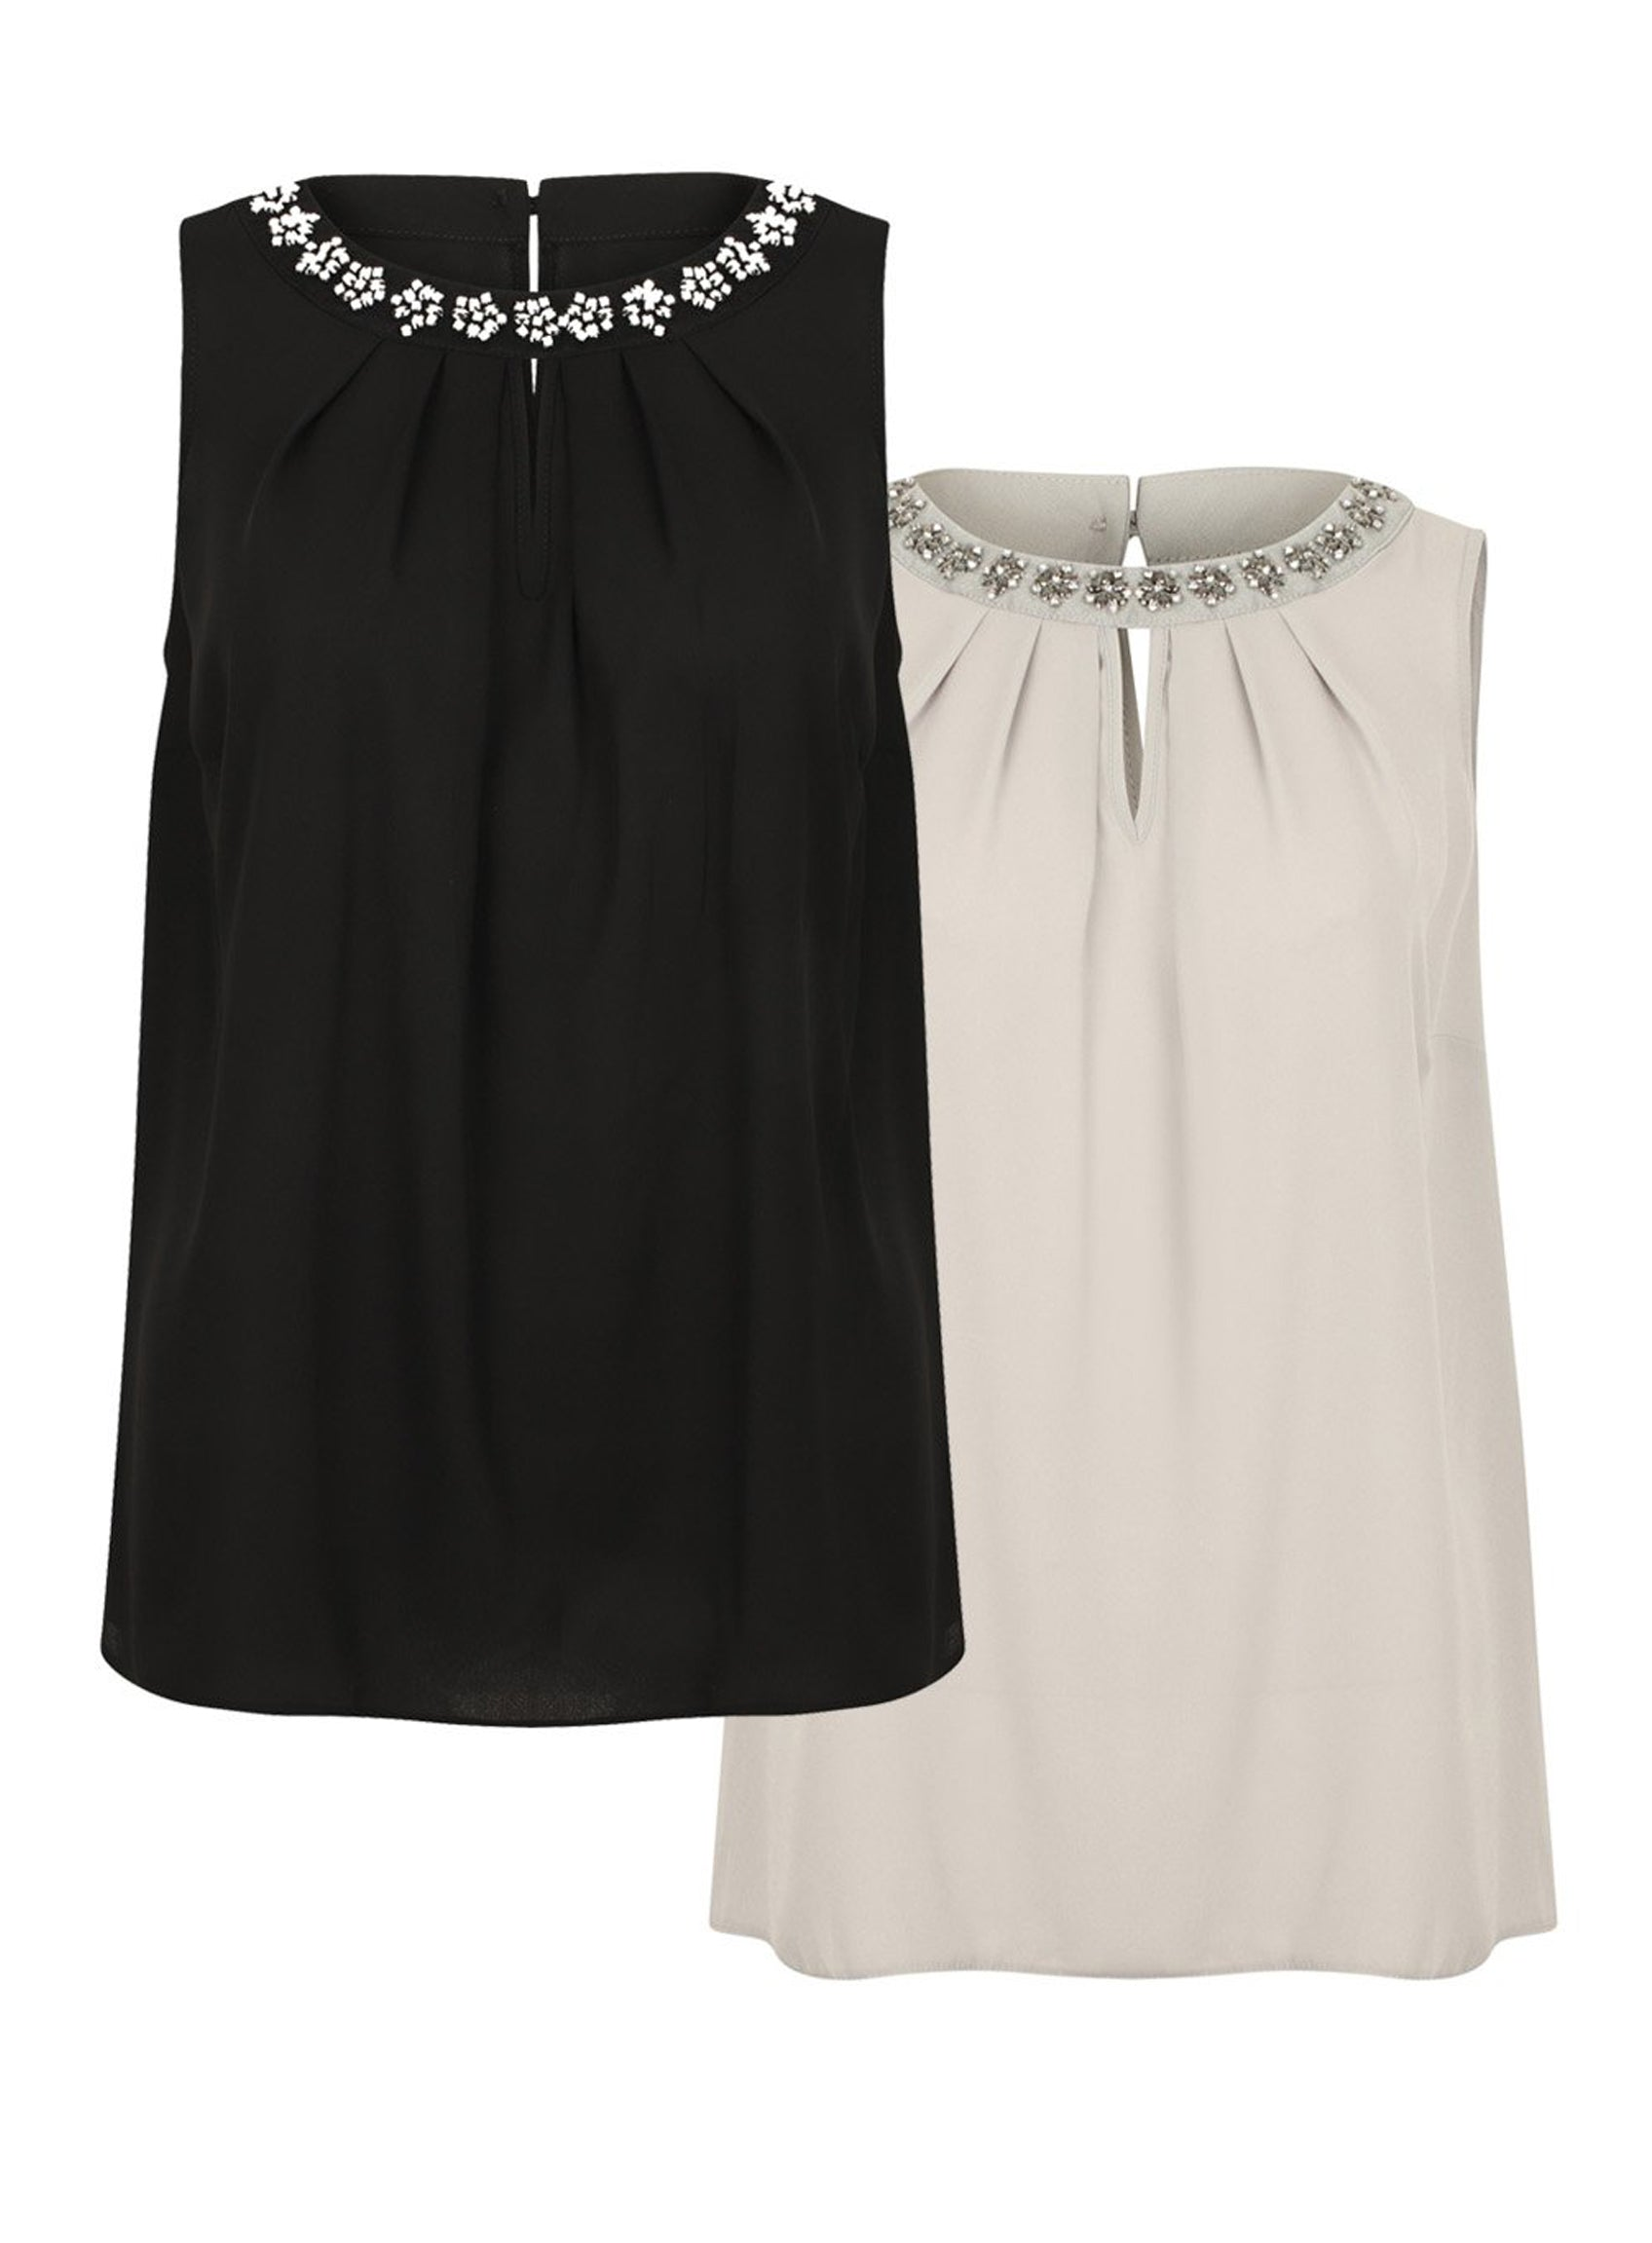 80d294b11fa Ex Evans Black Silver Sleeveless Embellished Diamante Chiffon Blouse T –  Yourstyleoutlet